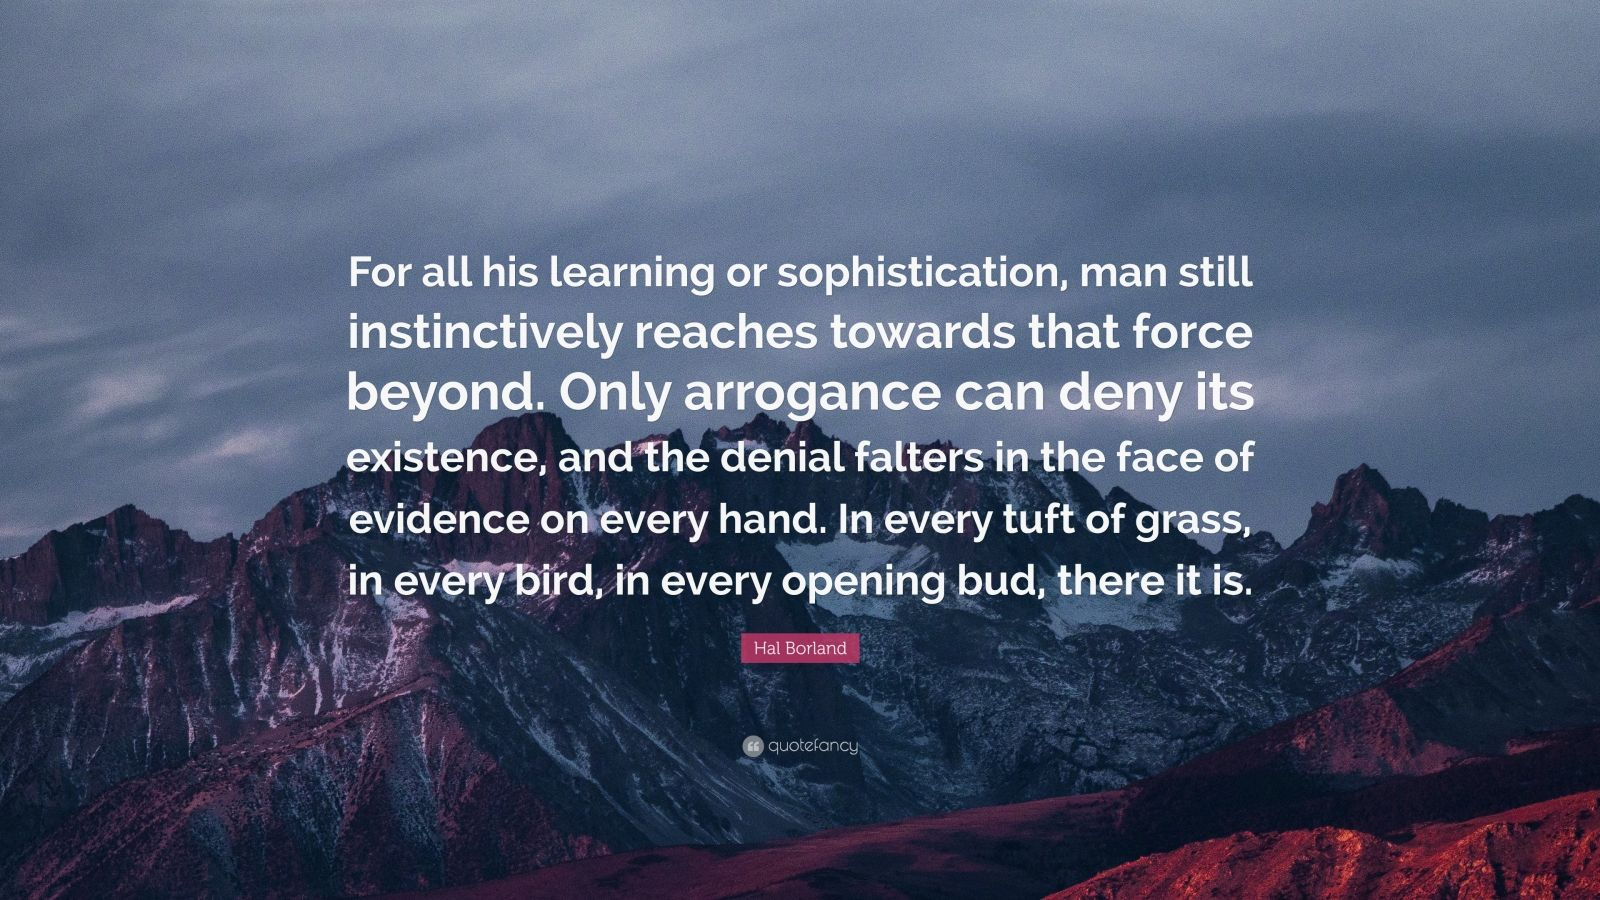 """Hal Borland Quote: """"For all his learning or sophistication, man still instinctively reaches towards that force beyond. Only arrogance can deny its existence, and the denial falters in the face of evidence on every hand. In every tuft of grass, in every bird, in every opening bud, there it is."""""""